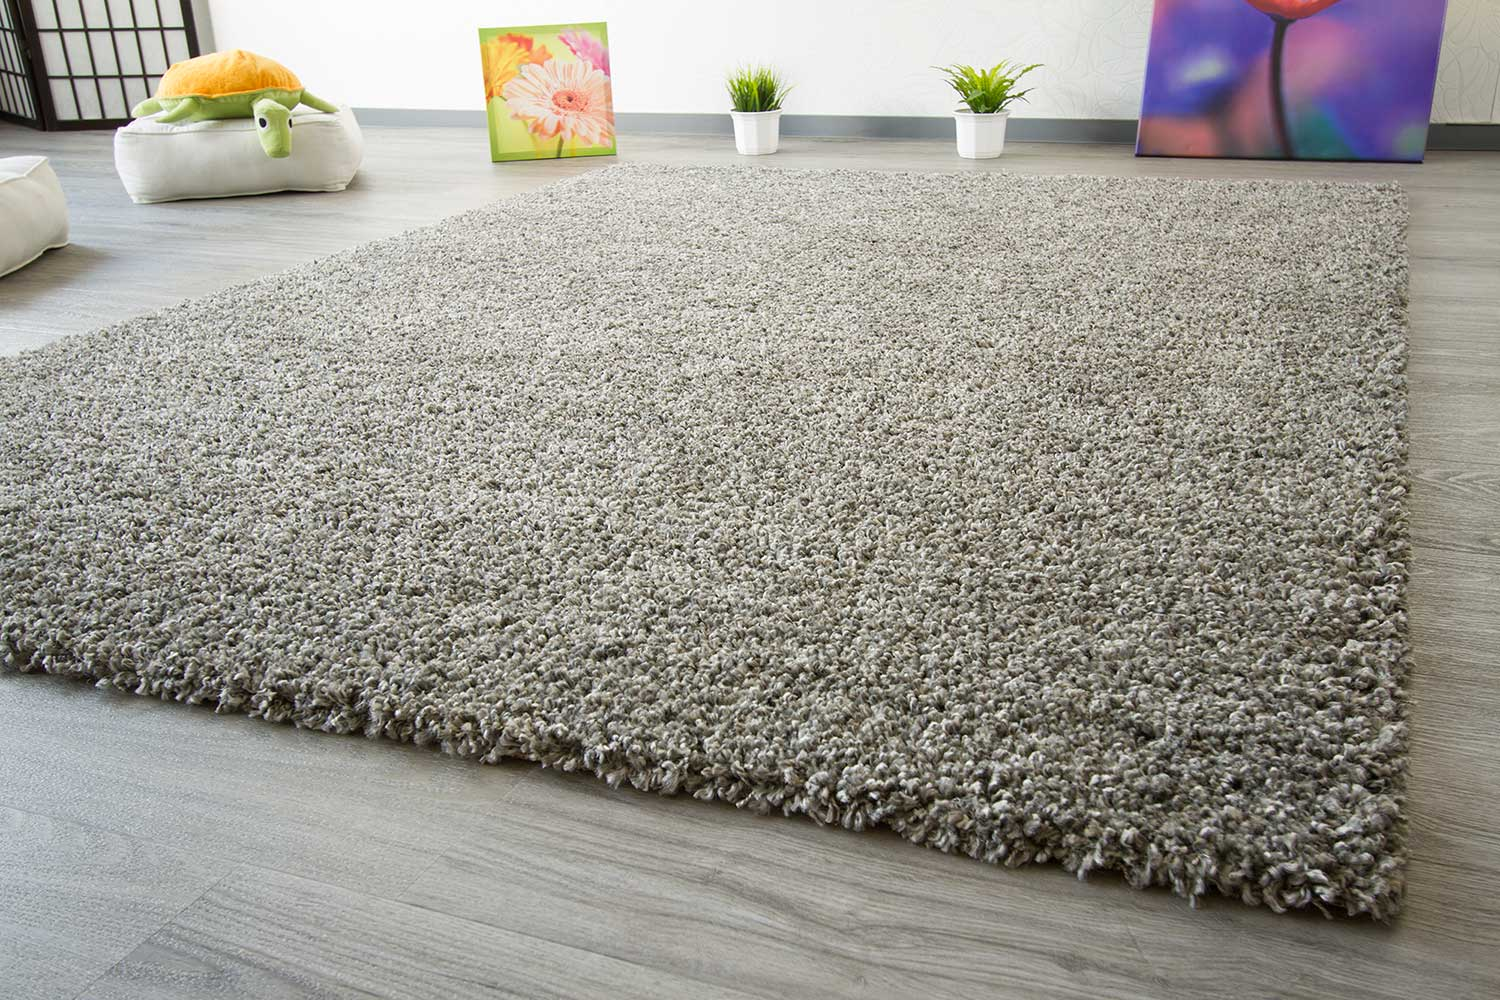 Flauschiger teppich  Hochflor Teppich Funny Luxus - MySize | global-carpet